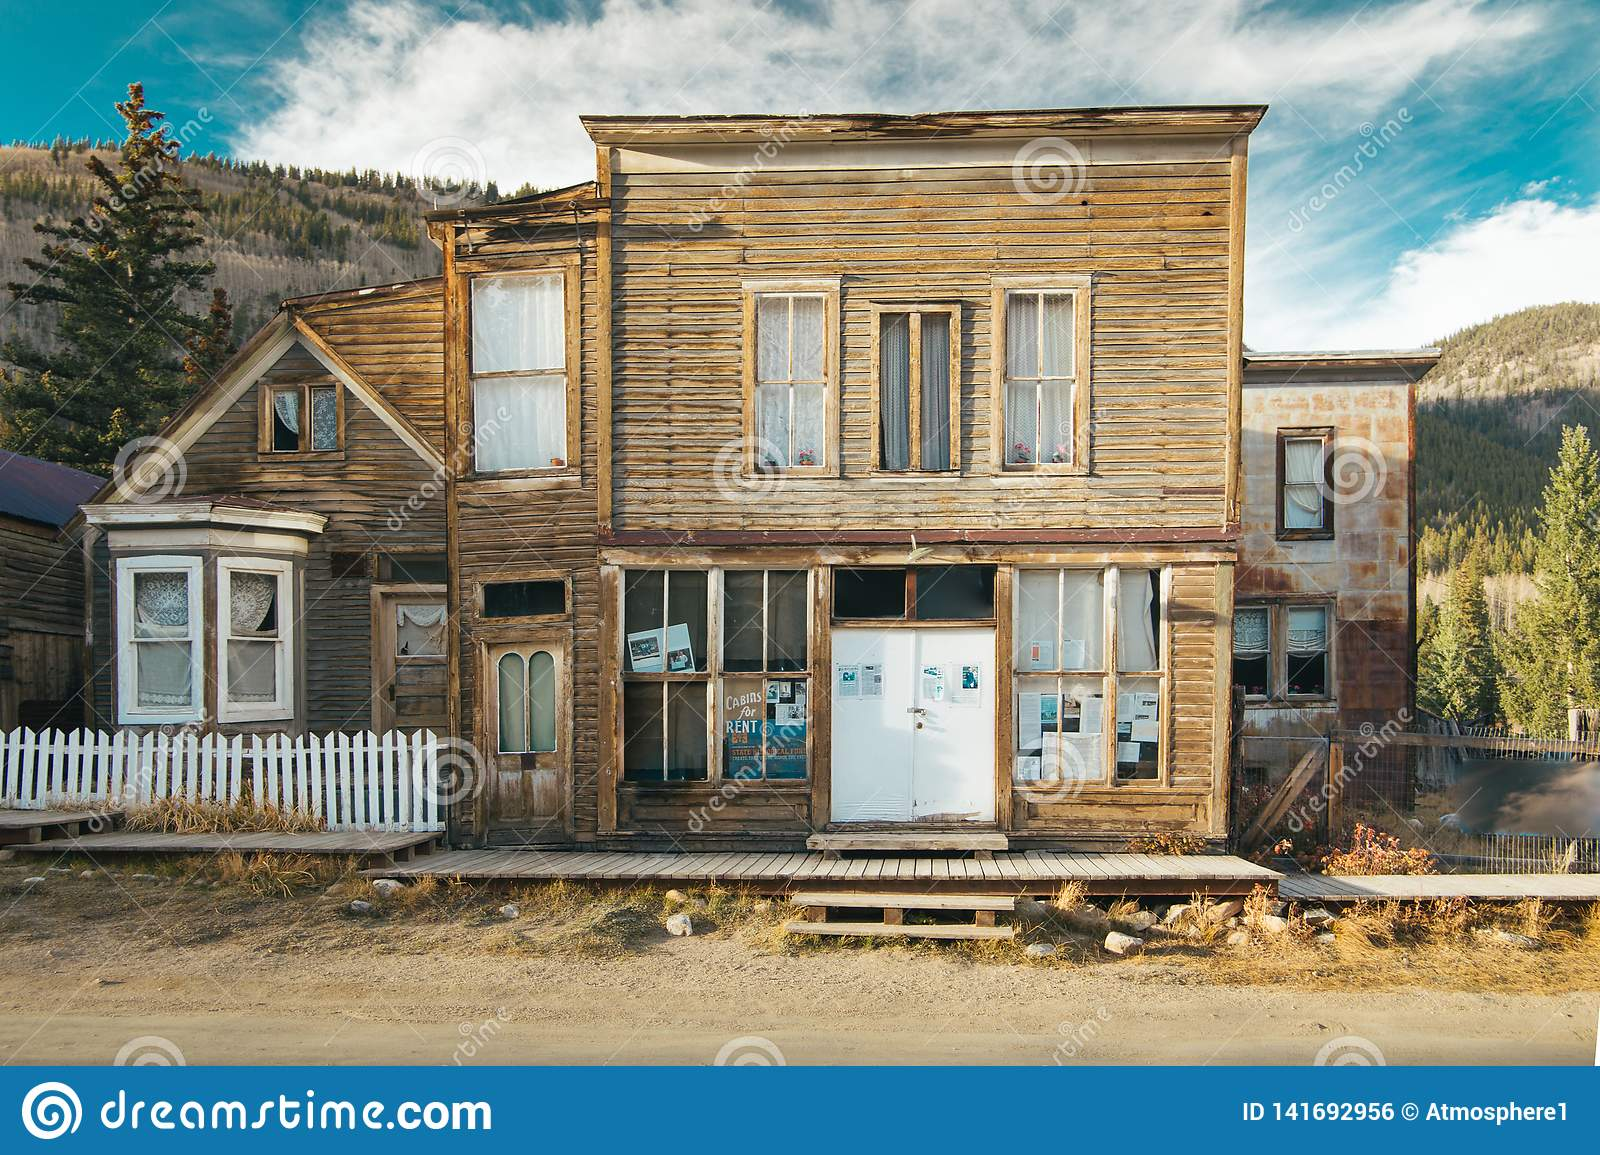 Old Western Wooden post office or saloon in St. Elmo Gold Mine Ghost Town in Colorado, USA